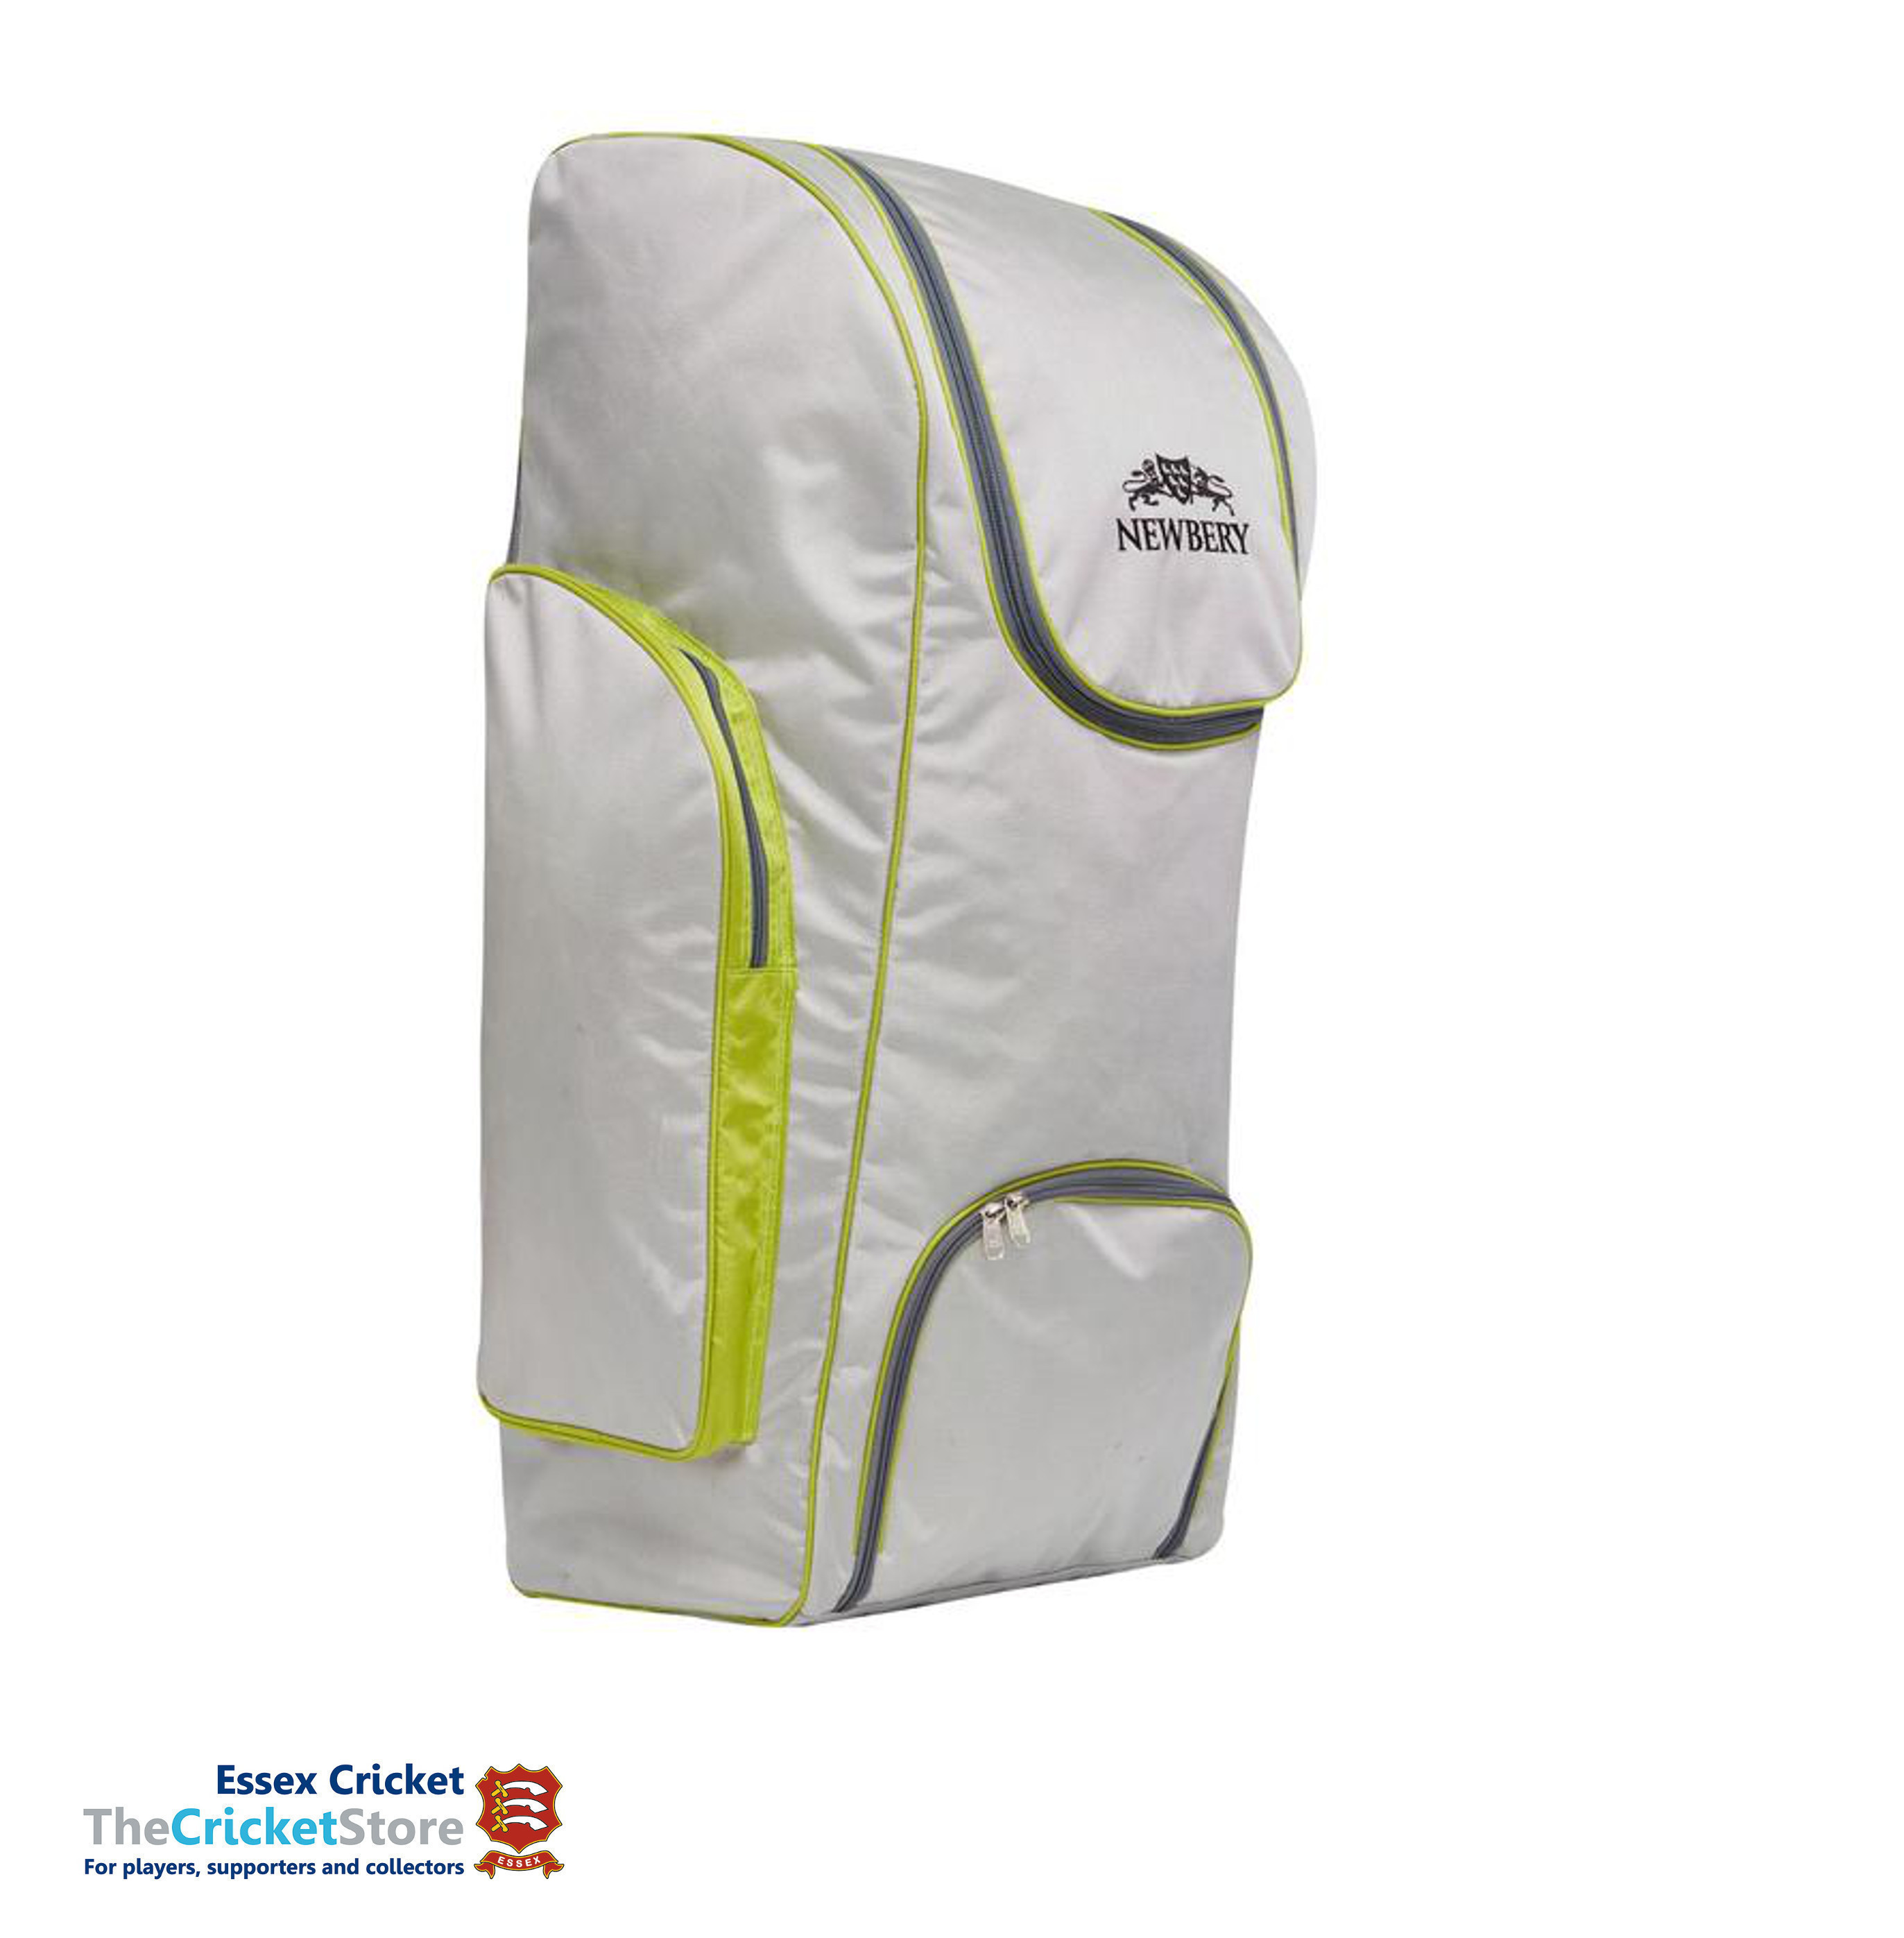 f6c4d35c4d7a Shop. The Cricket Store at Essex Cricket   Newbery Big Duffle Bag